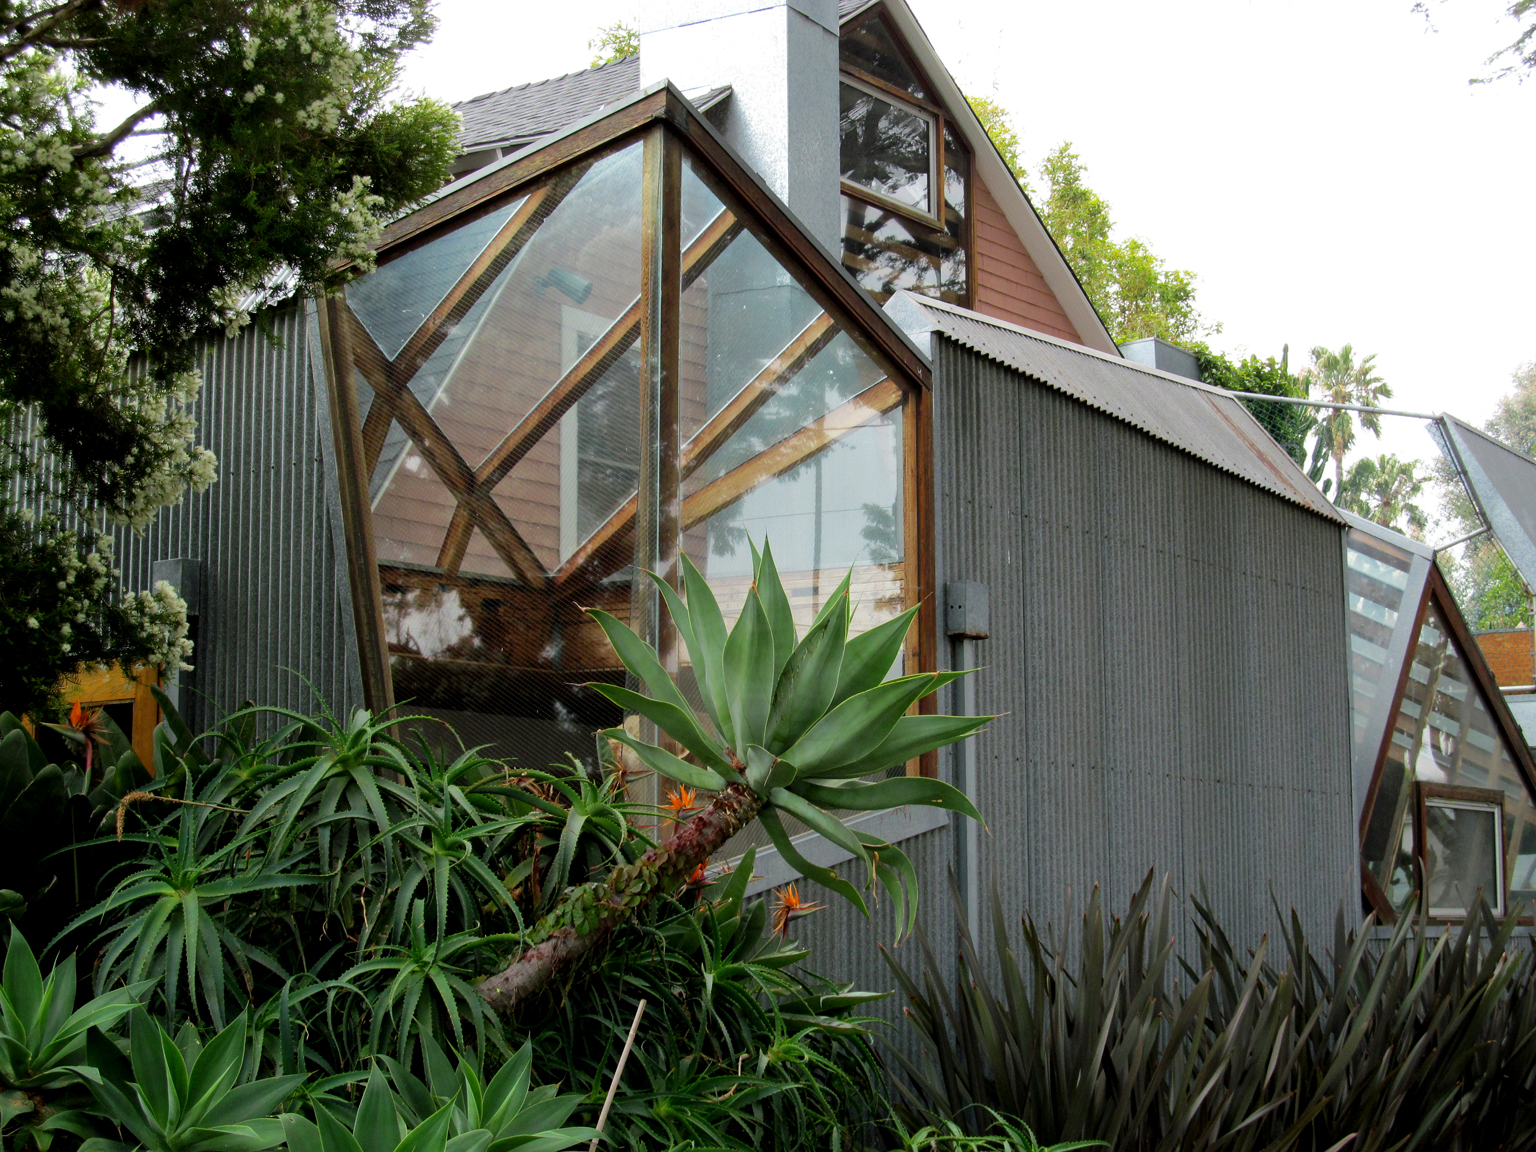 Gehry's house in Santa Monica, shot by Rob Corder